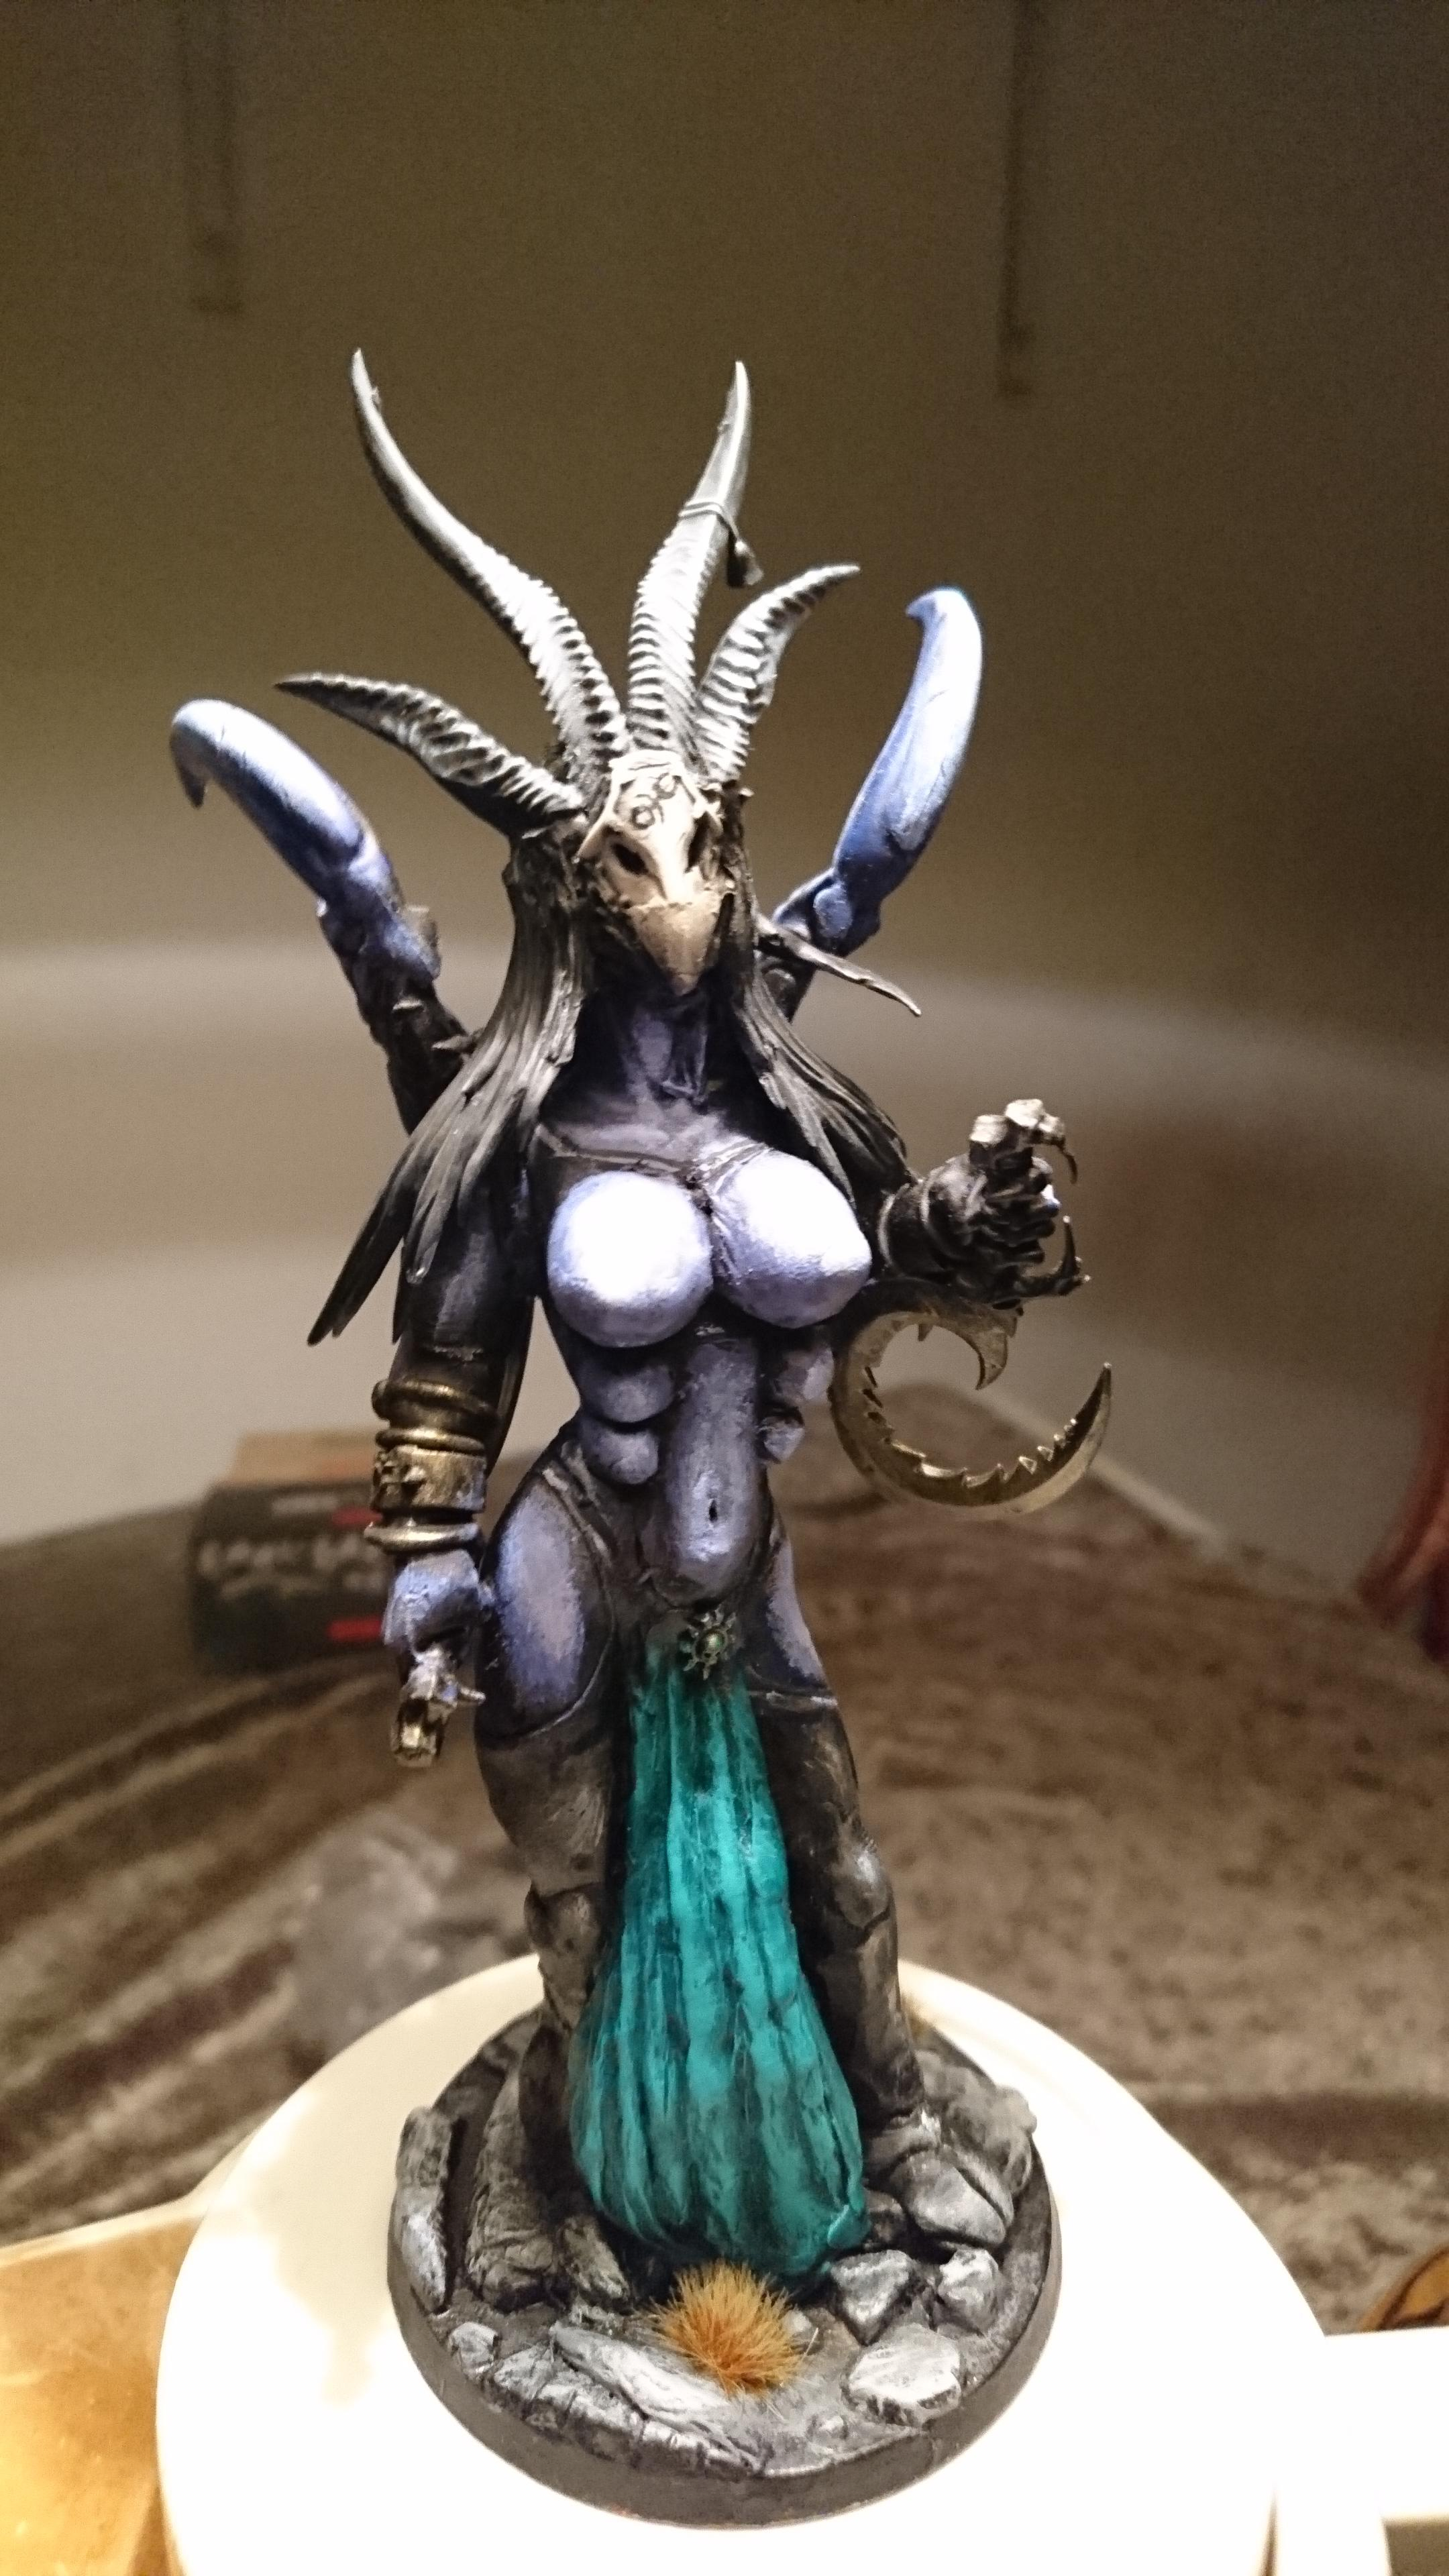 Breasts, Chaos, Conversion, Daemons, Female, Greater, Hair, Horns, Keeper, Loincloth, Long, Lord, Secrets, Slaanesh, Tarnish, Vermin